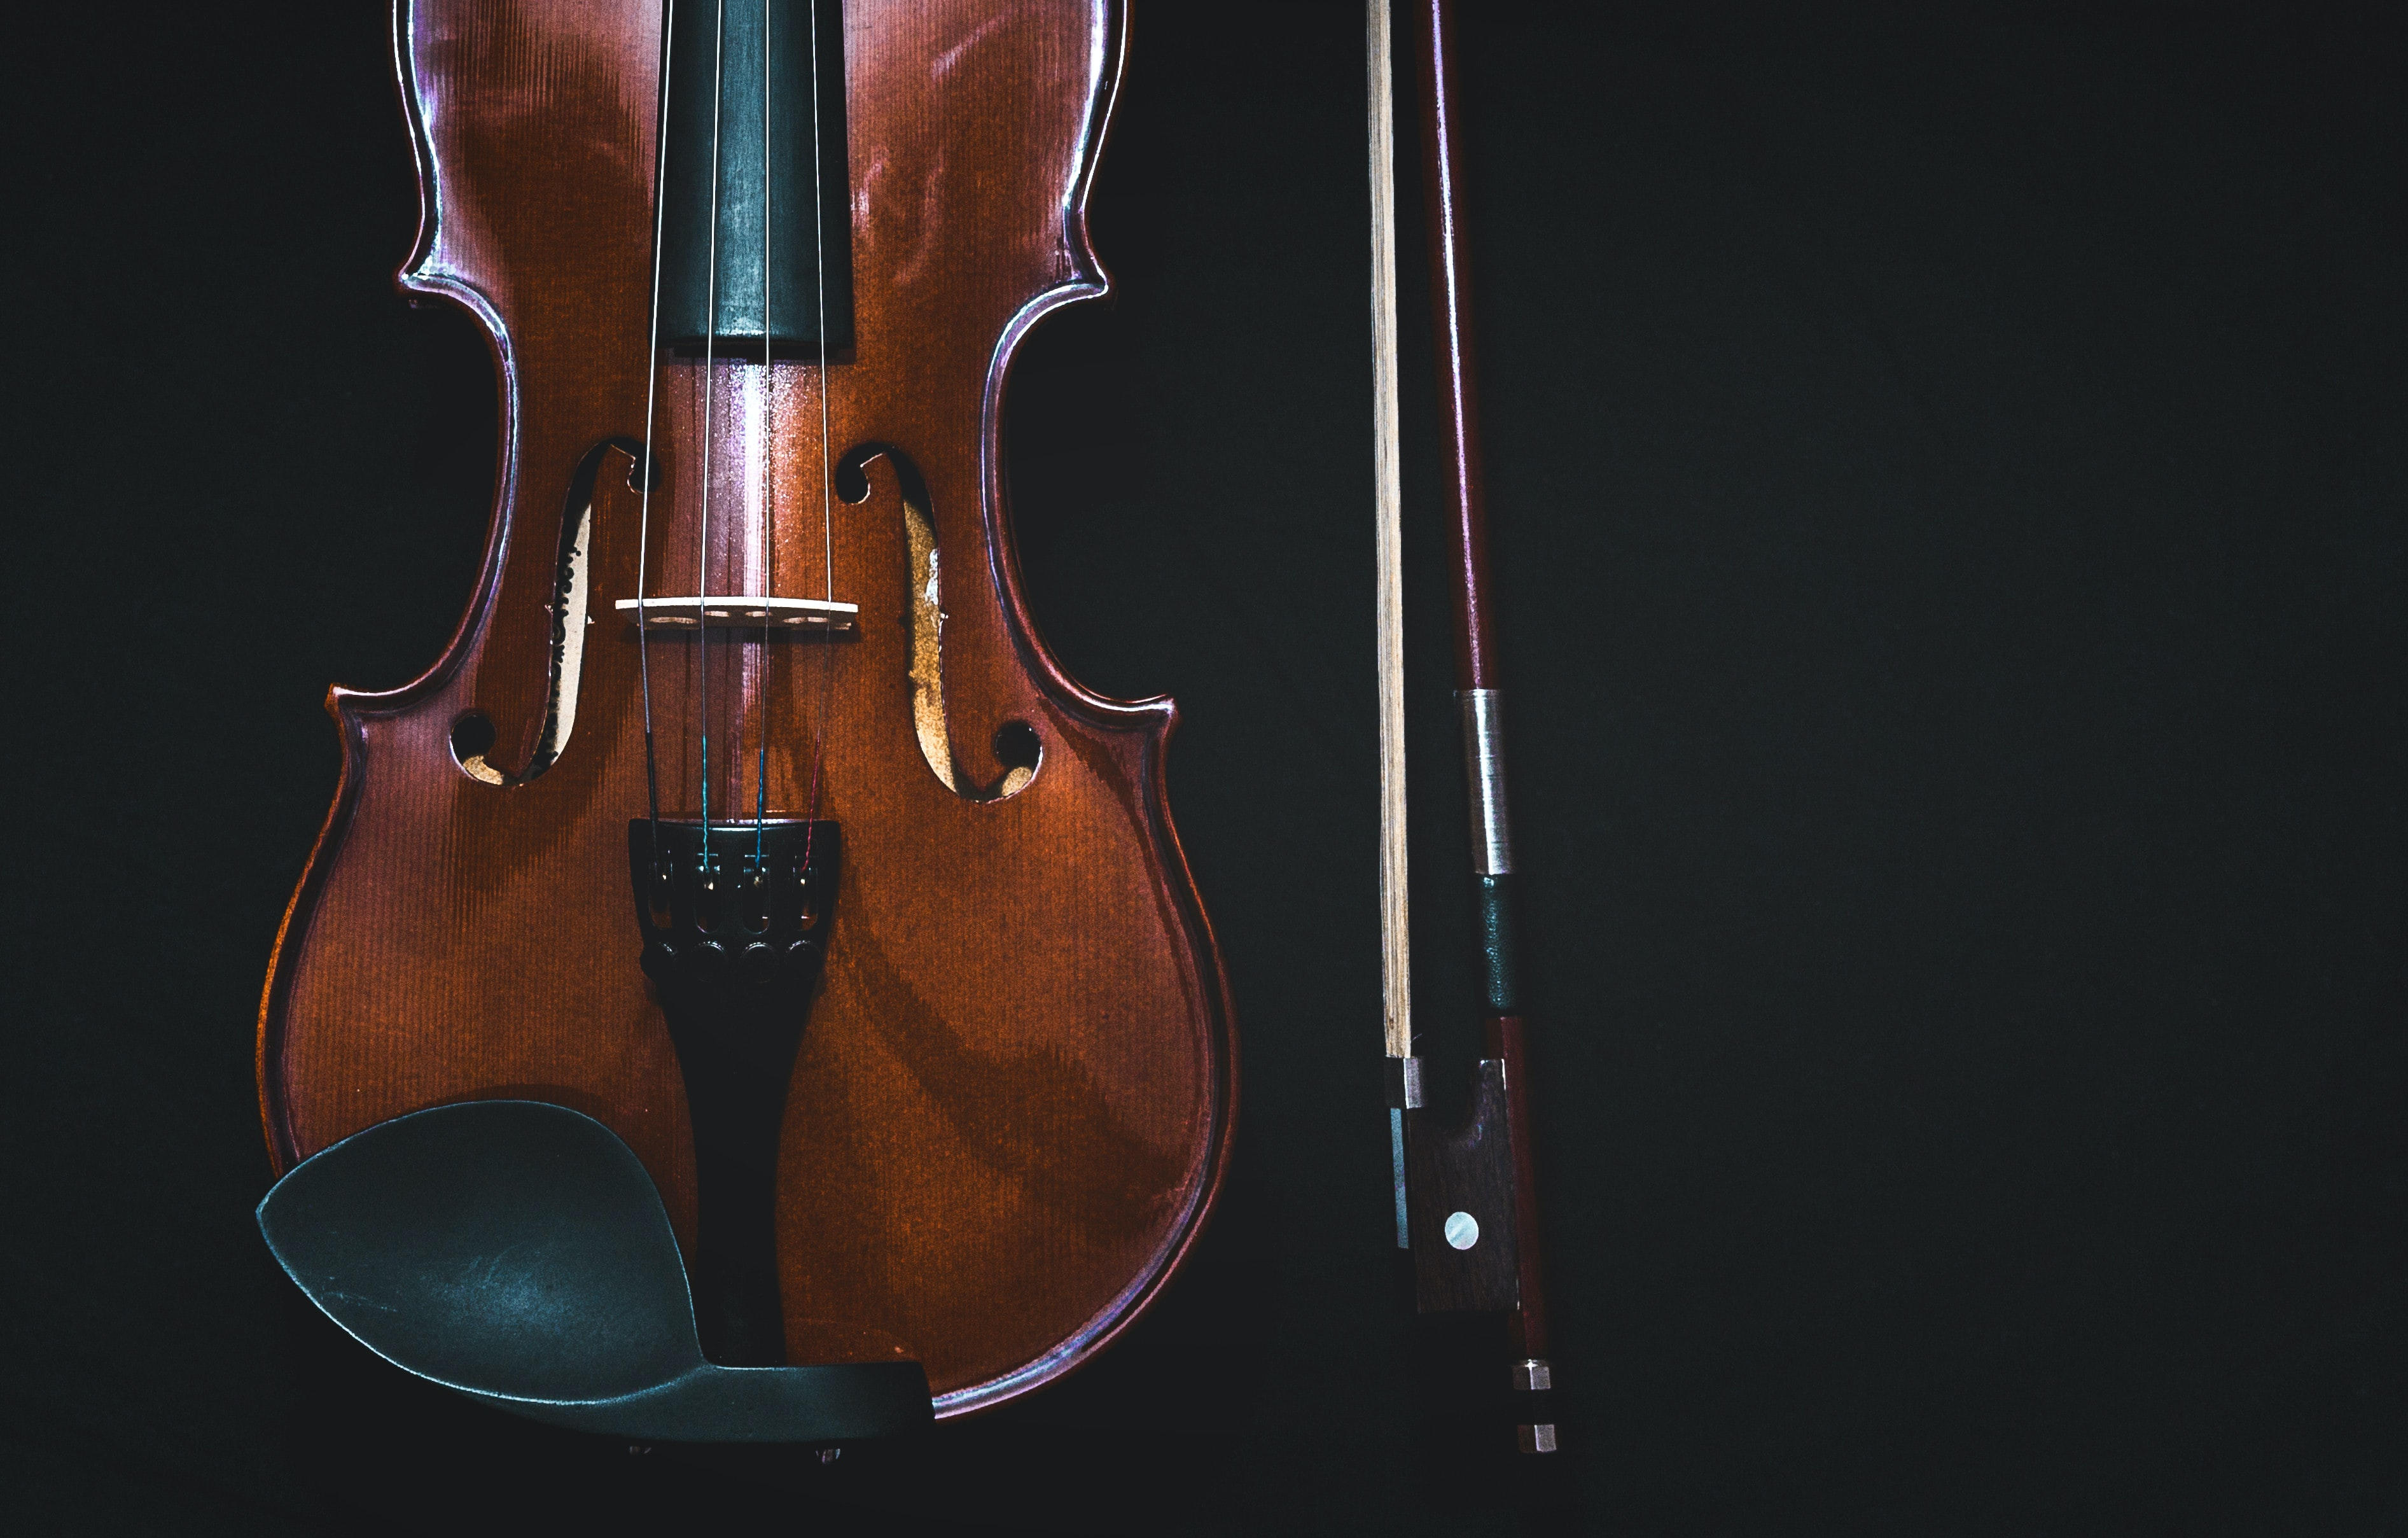 An overhead shot of a violin and a string